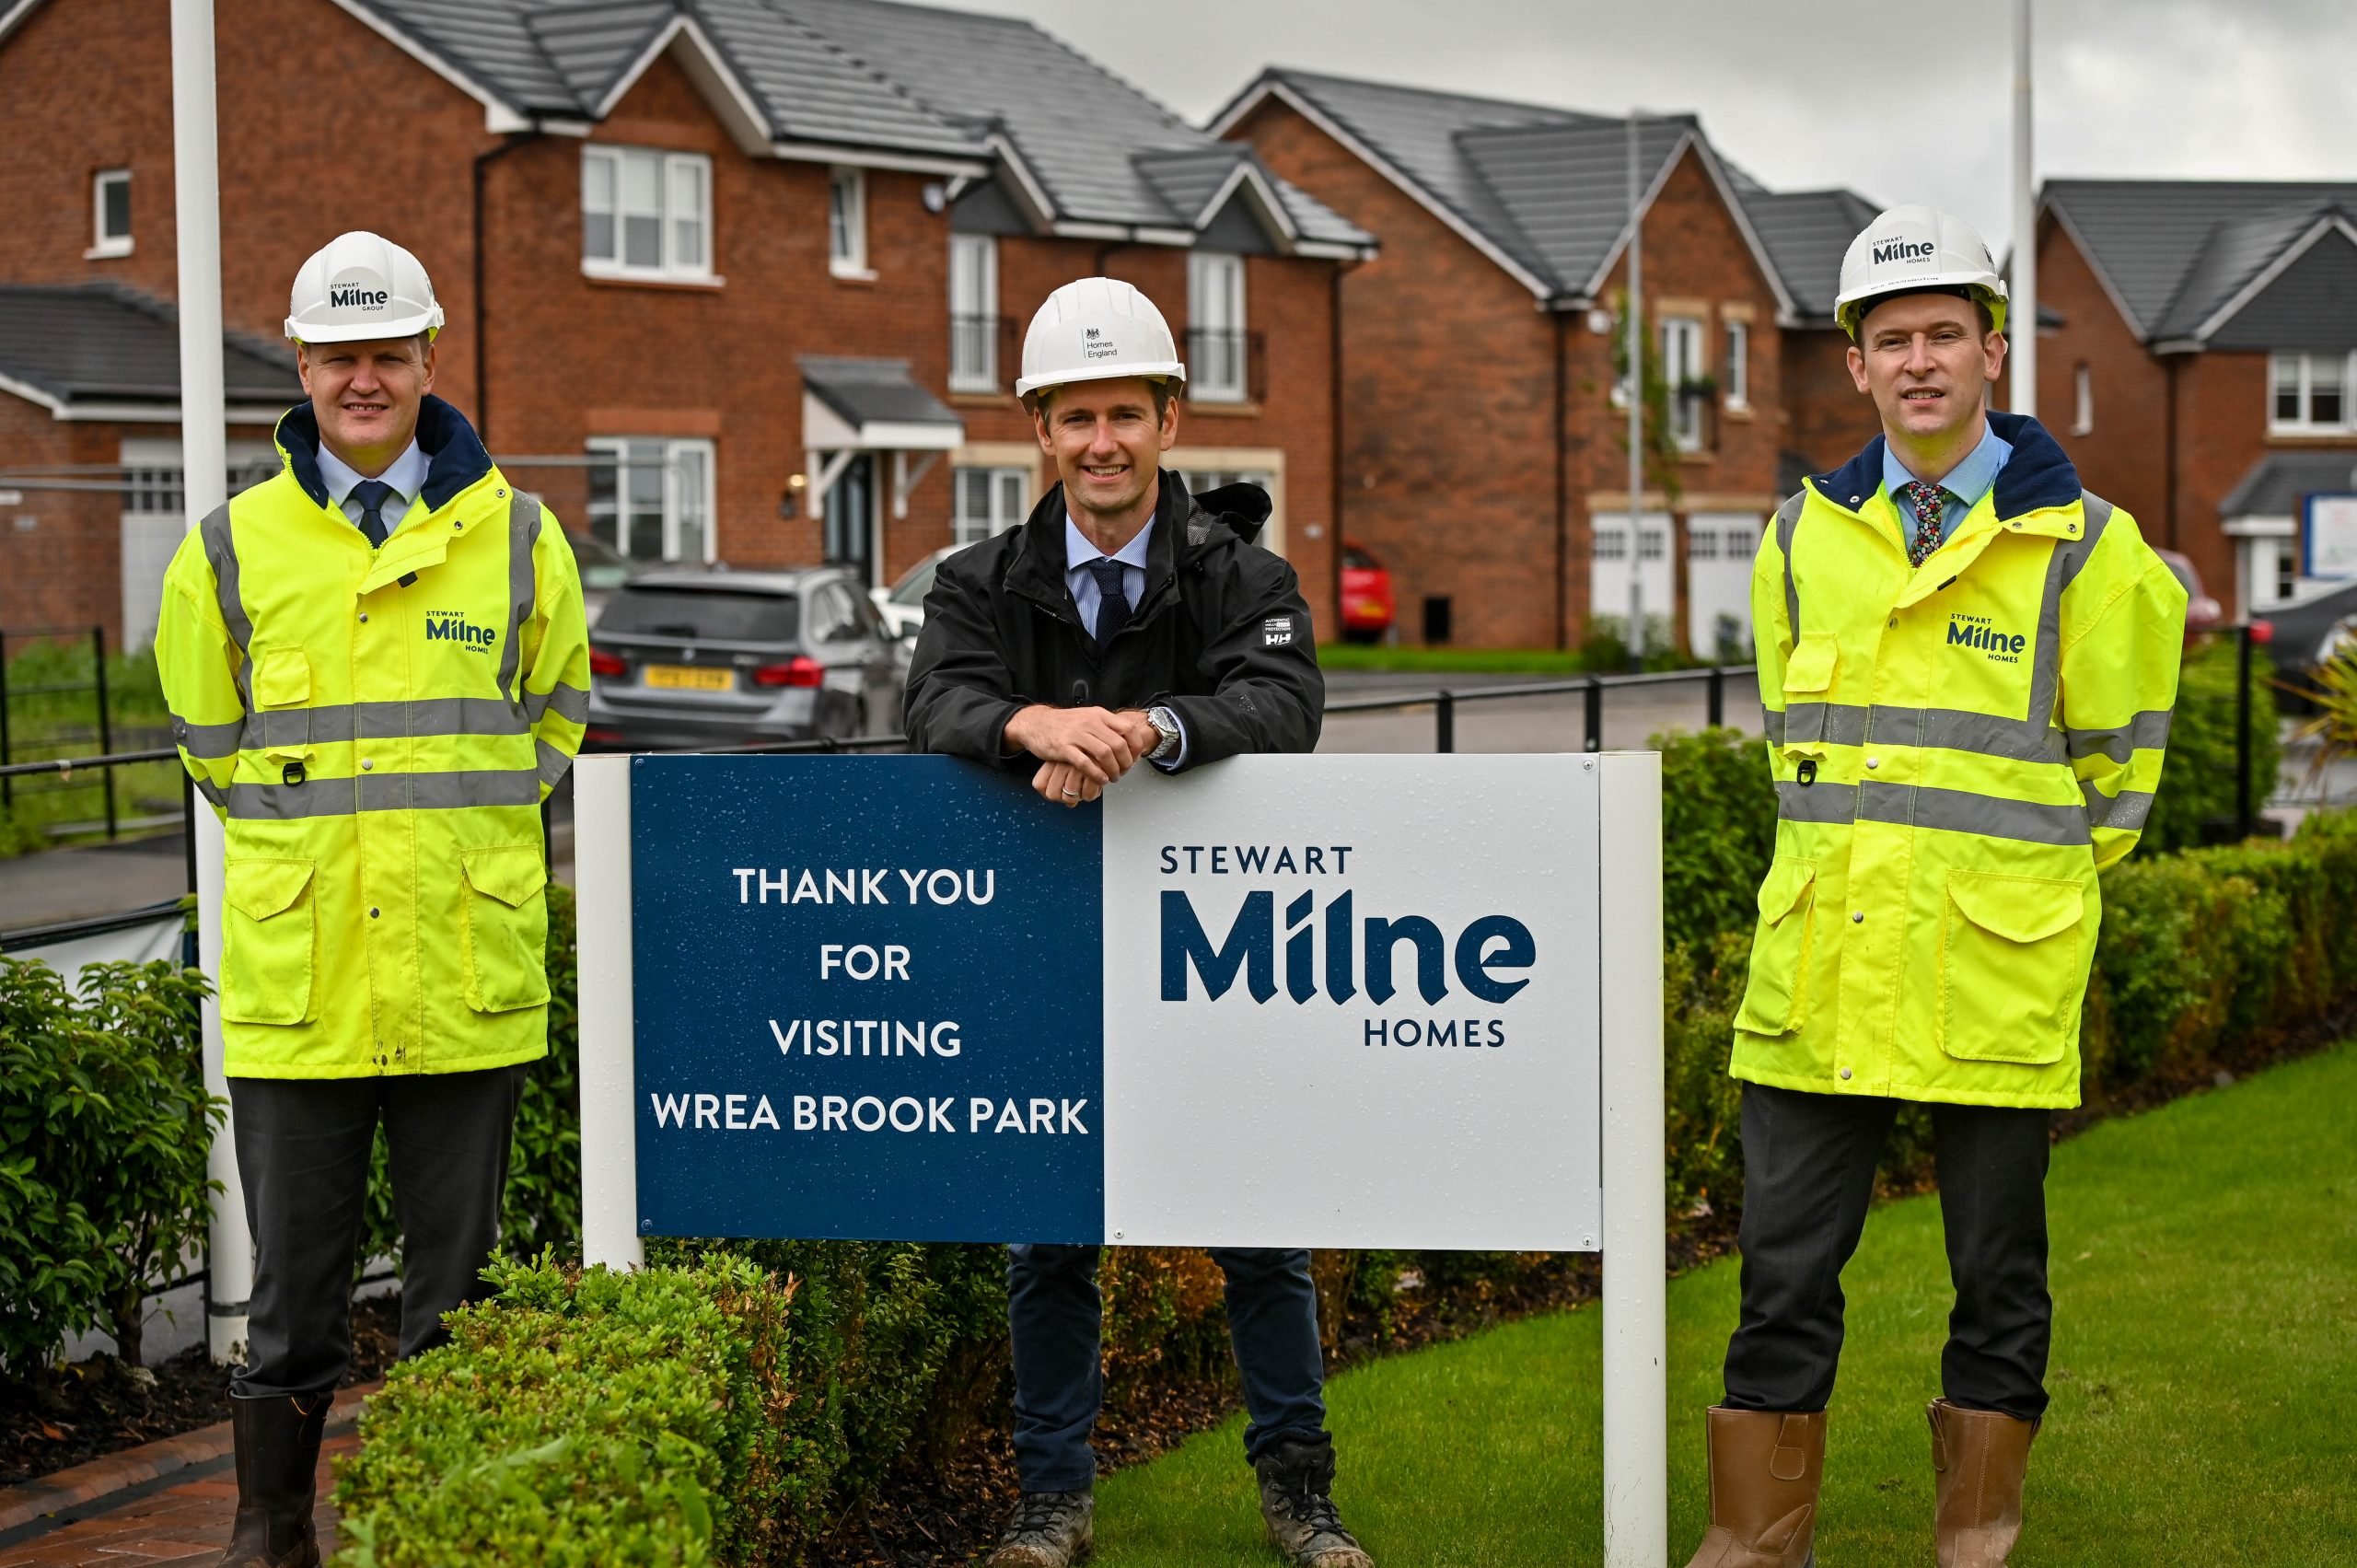 STEWART MILNE HOMES SECURES £13M FROM HOMES ENGLAND TO ACCELERATE DELIVERY OF 1,000 NEW HOMES IN THE NORTH WEST